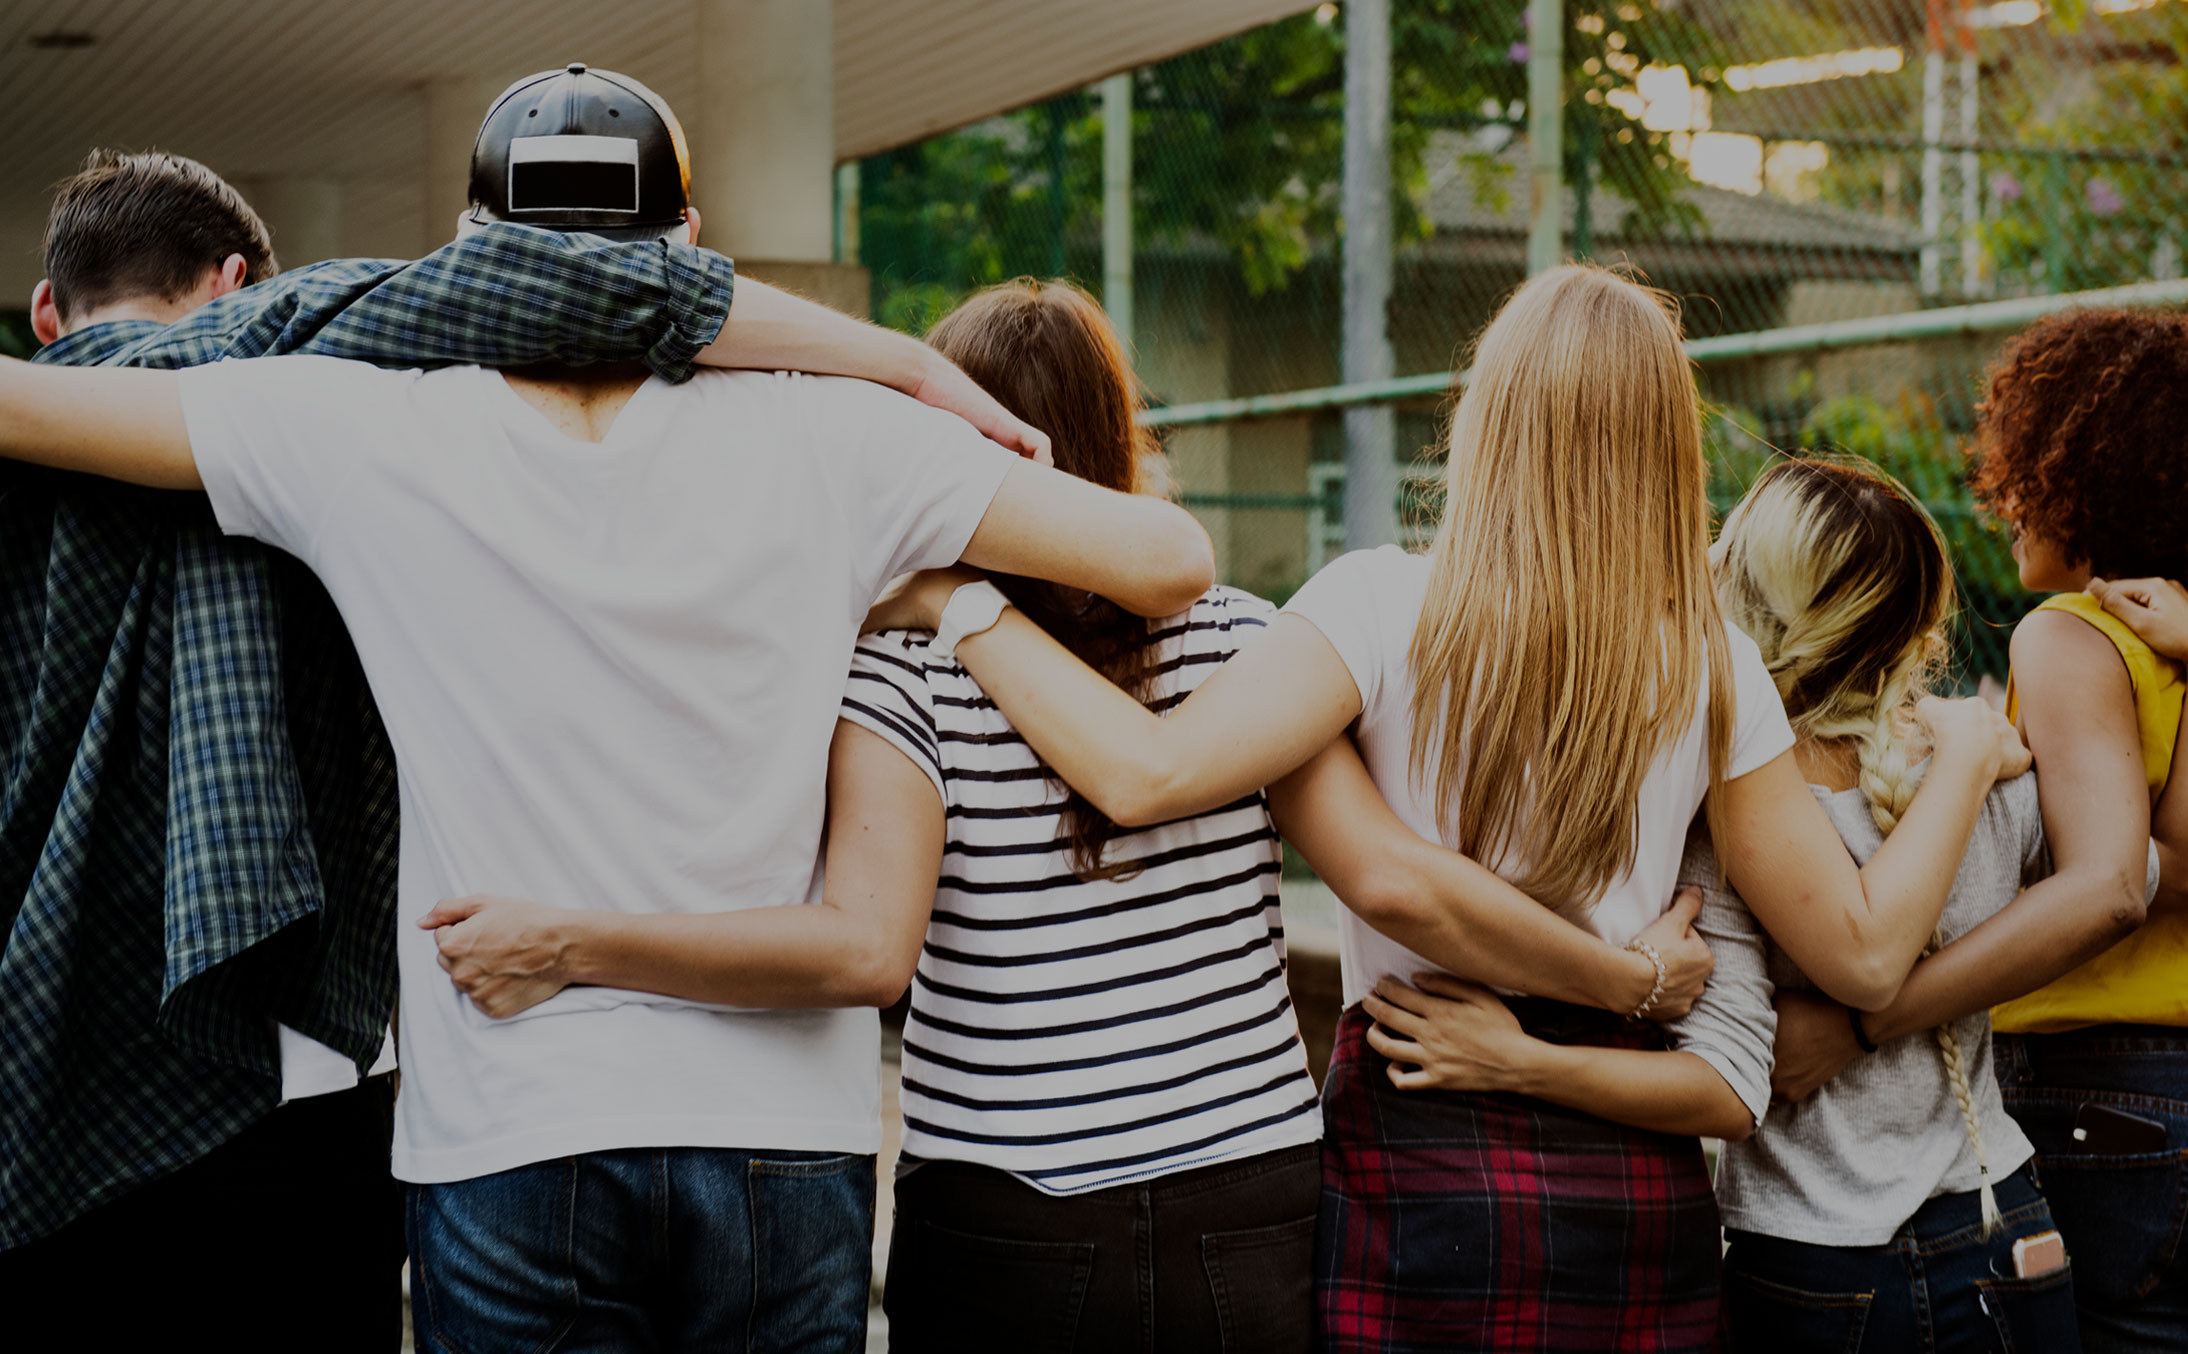 The new Interpersonal Violence Research Laboratory strives to reduce interpersonal violence from communities and to promote recovery among survivors.